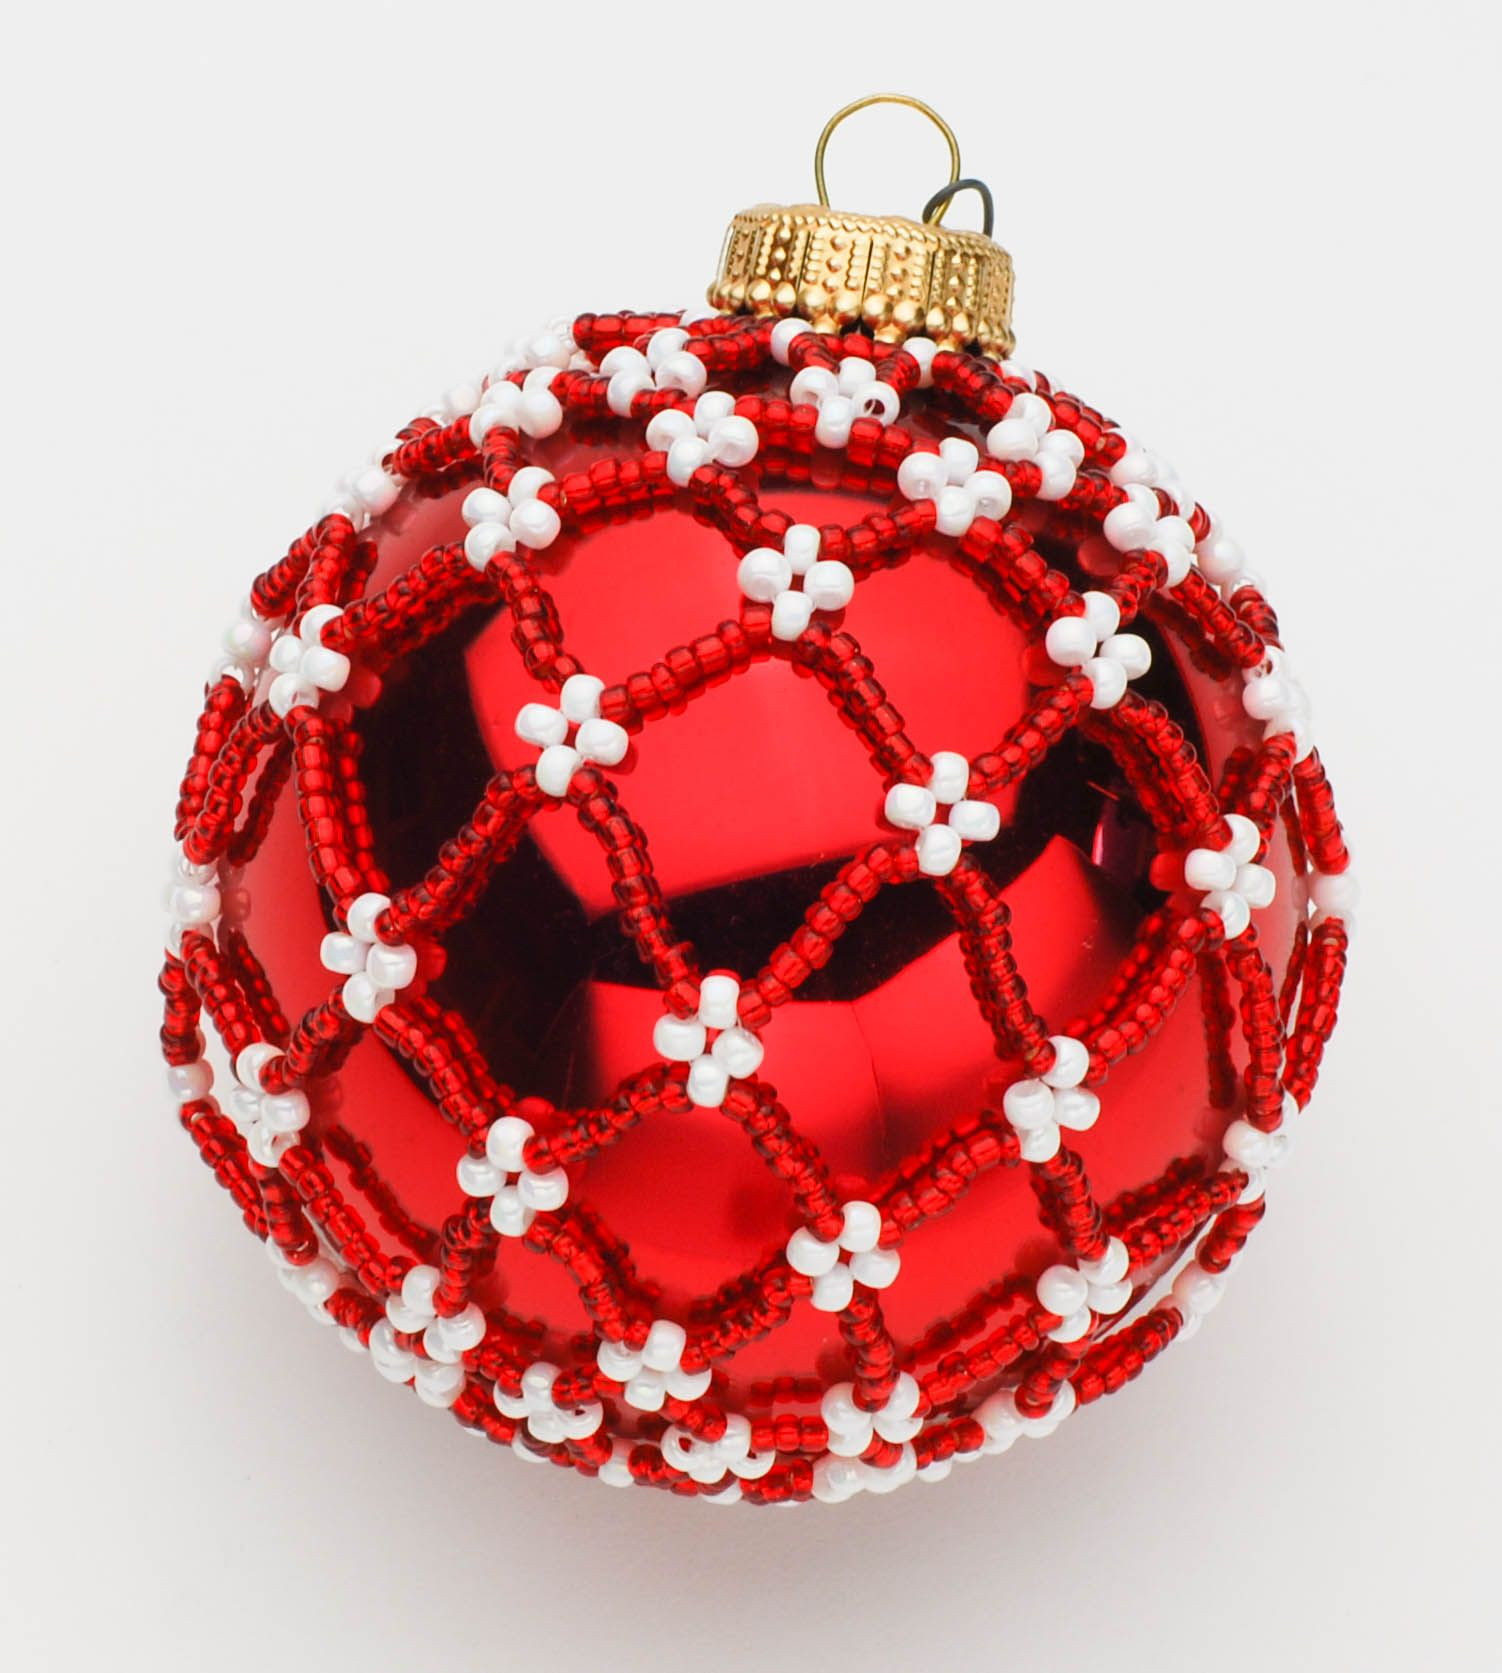 Christmas Ornament Design By Jill Wiseman Beaded Christmas Decorations Christmas Ornament Crafts Beaded Christmas Ornaments